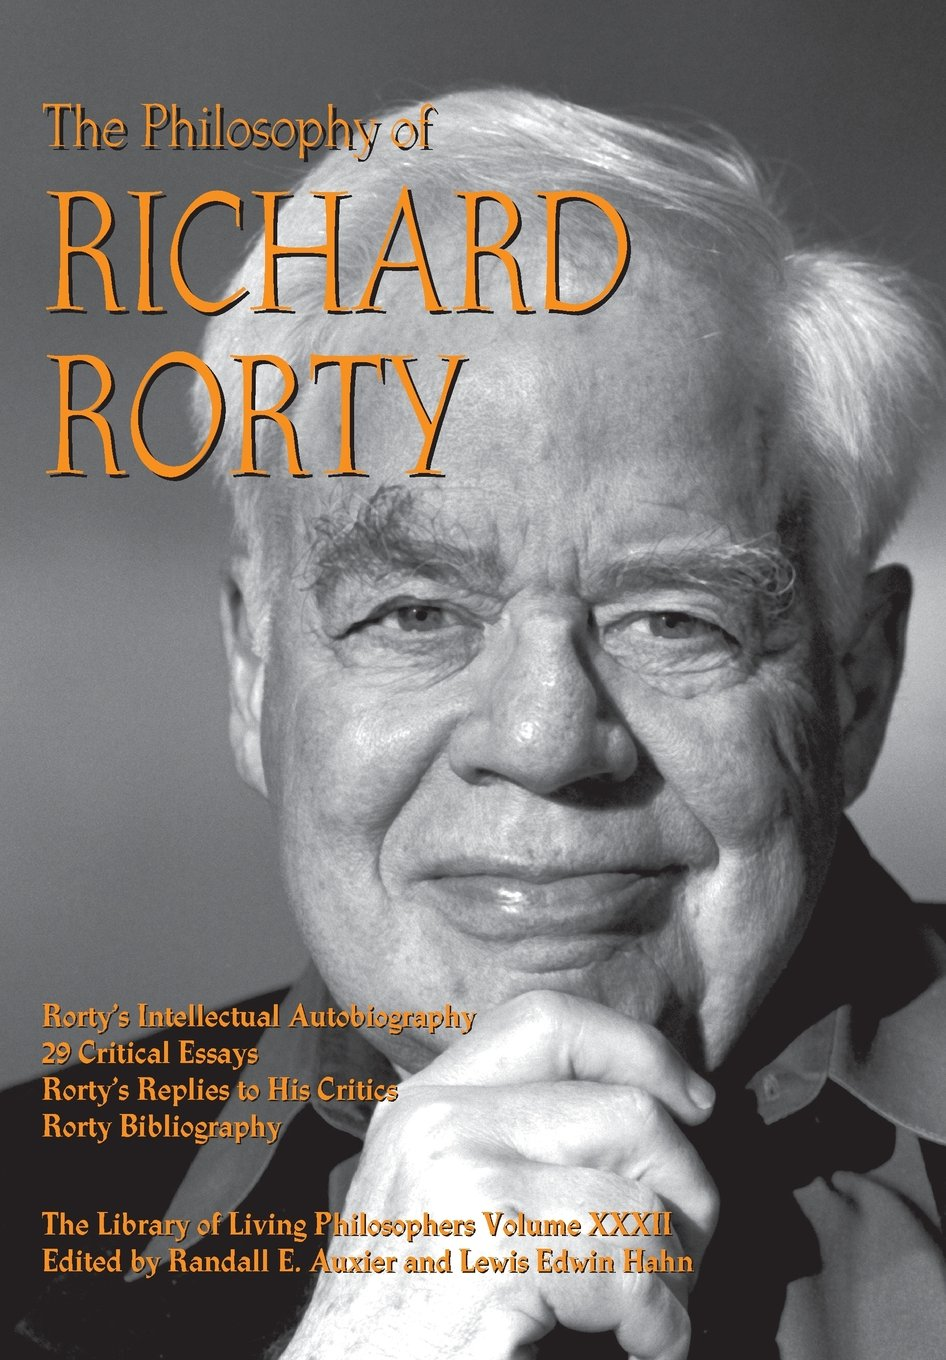 Download The Philosophy of Richard Rorty (Library of Living Philosophers) Text fb2 ebook